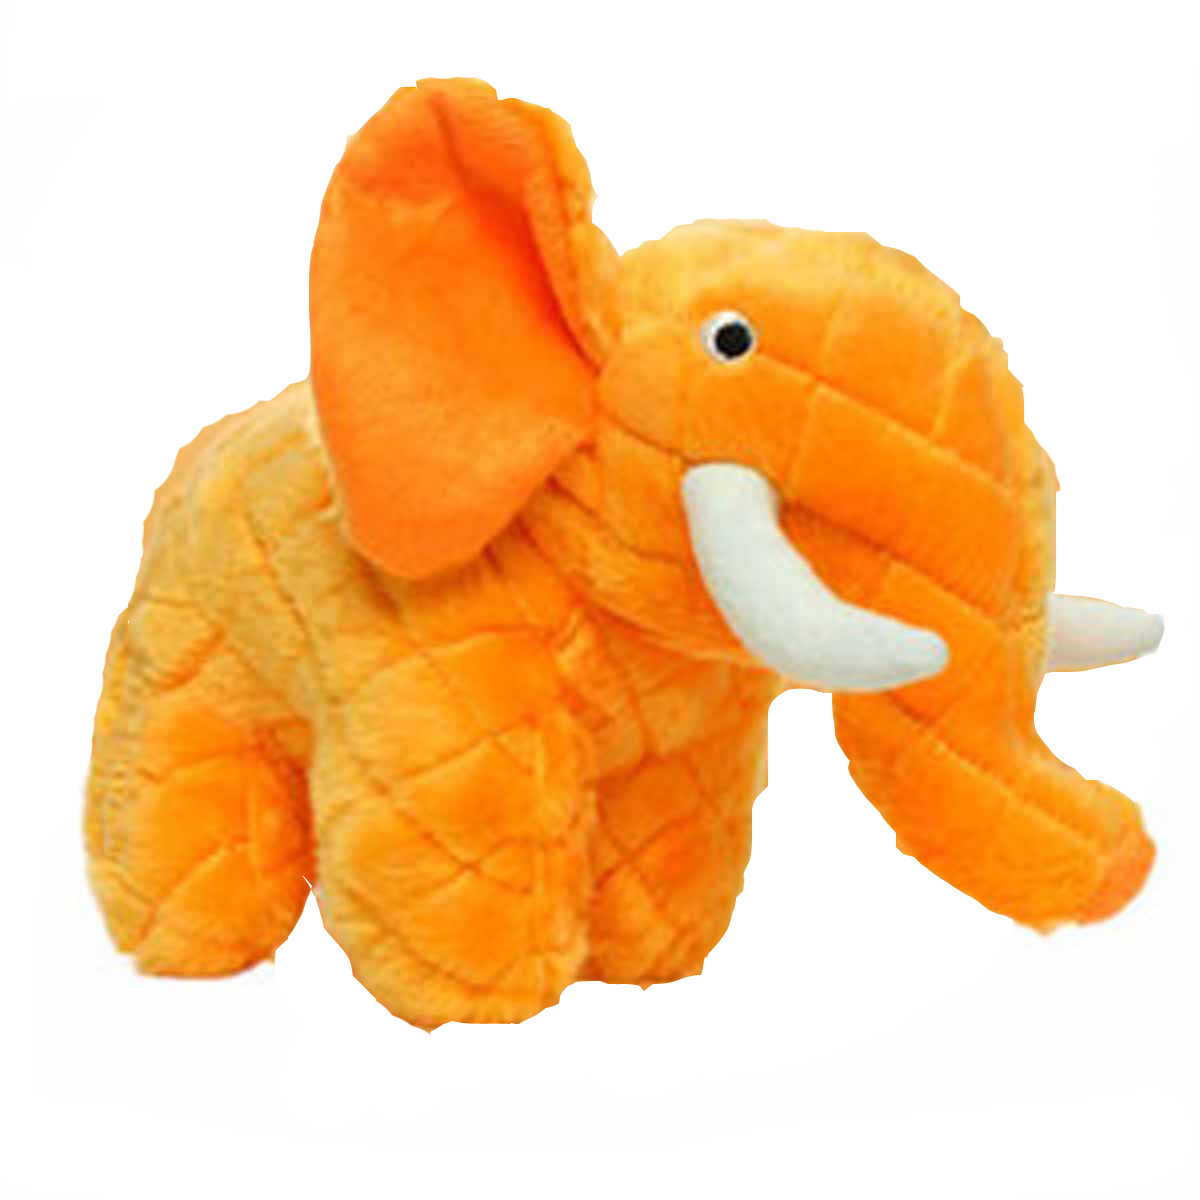 Mighty Safari Dog Toy - Ellie the Orange Elephant